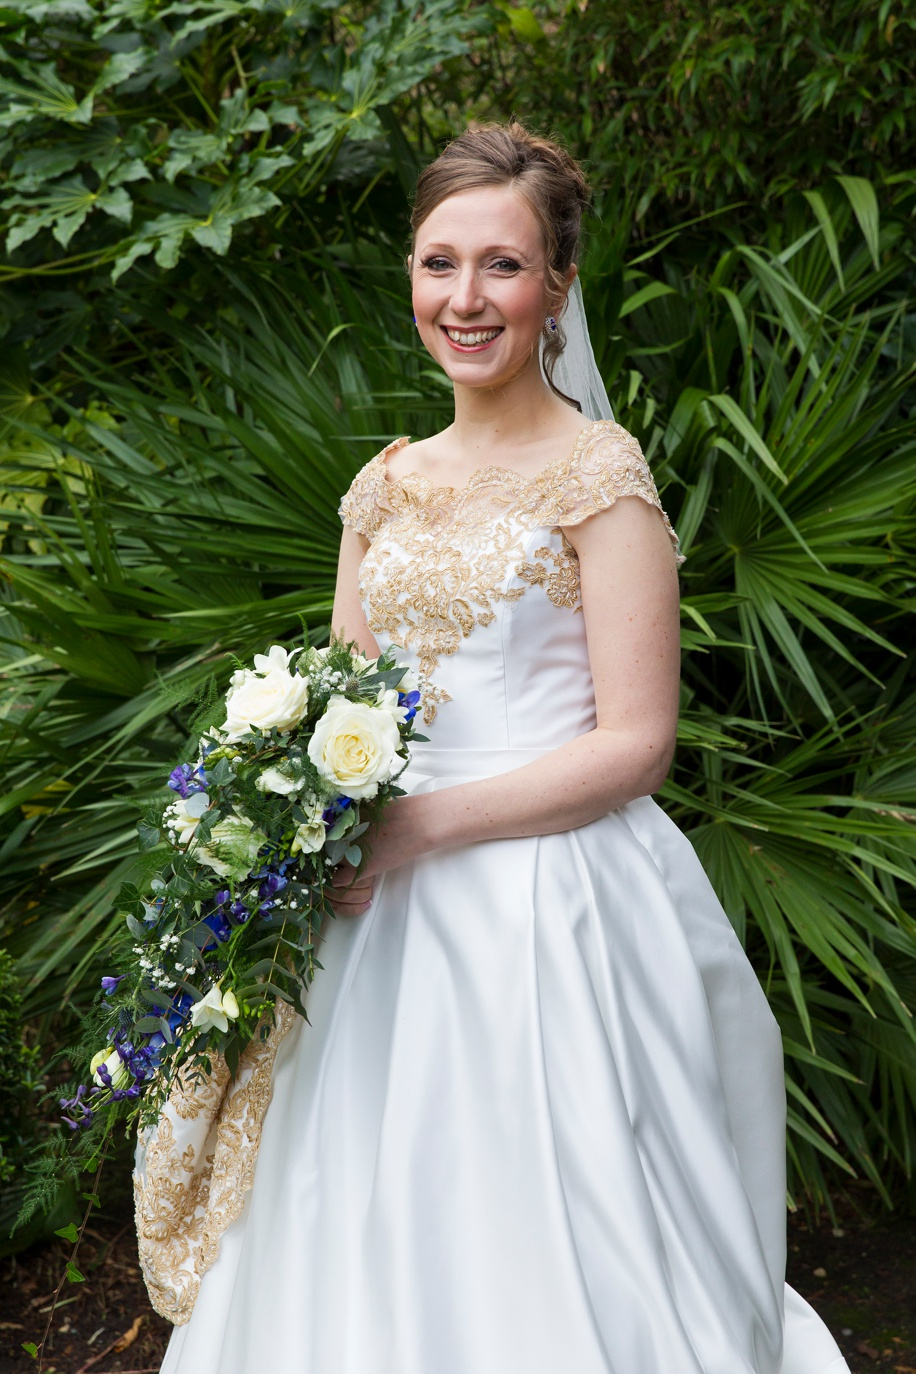 Stunning Bride portrait at the Lord Bute Hotel in Dorset